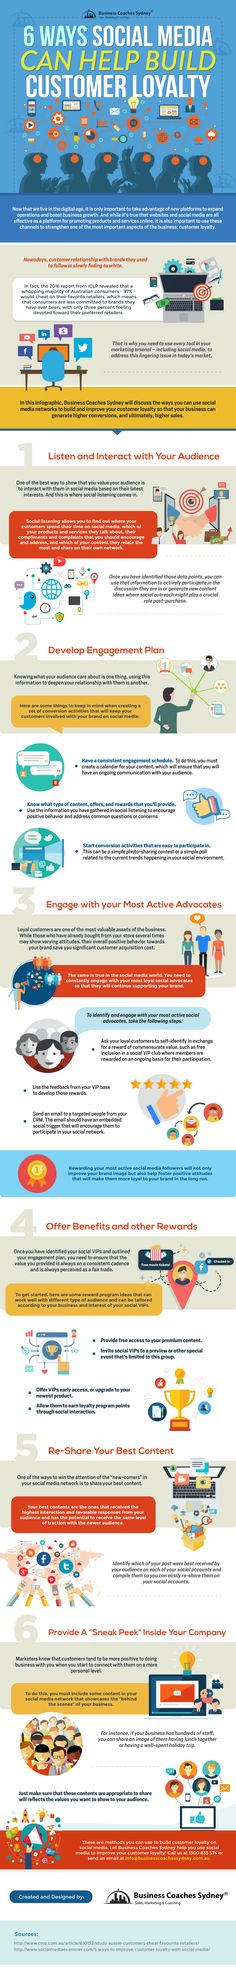 6 Ways Social Media Can Help Build Customer Loyalty [Infographic] | Social Media Today